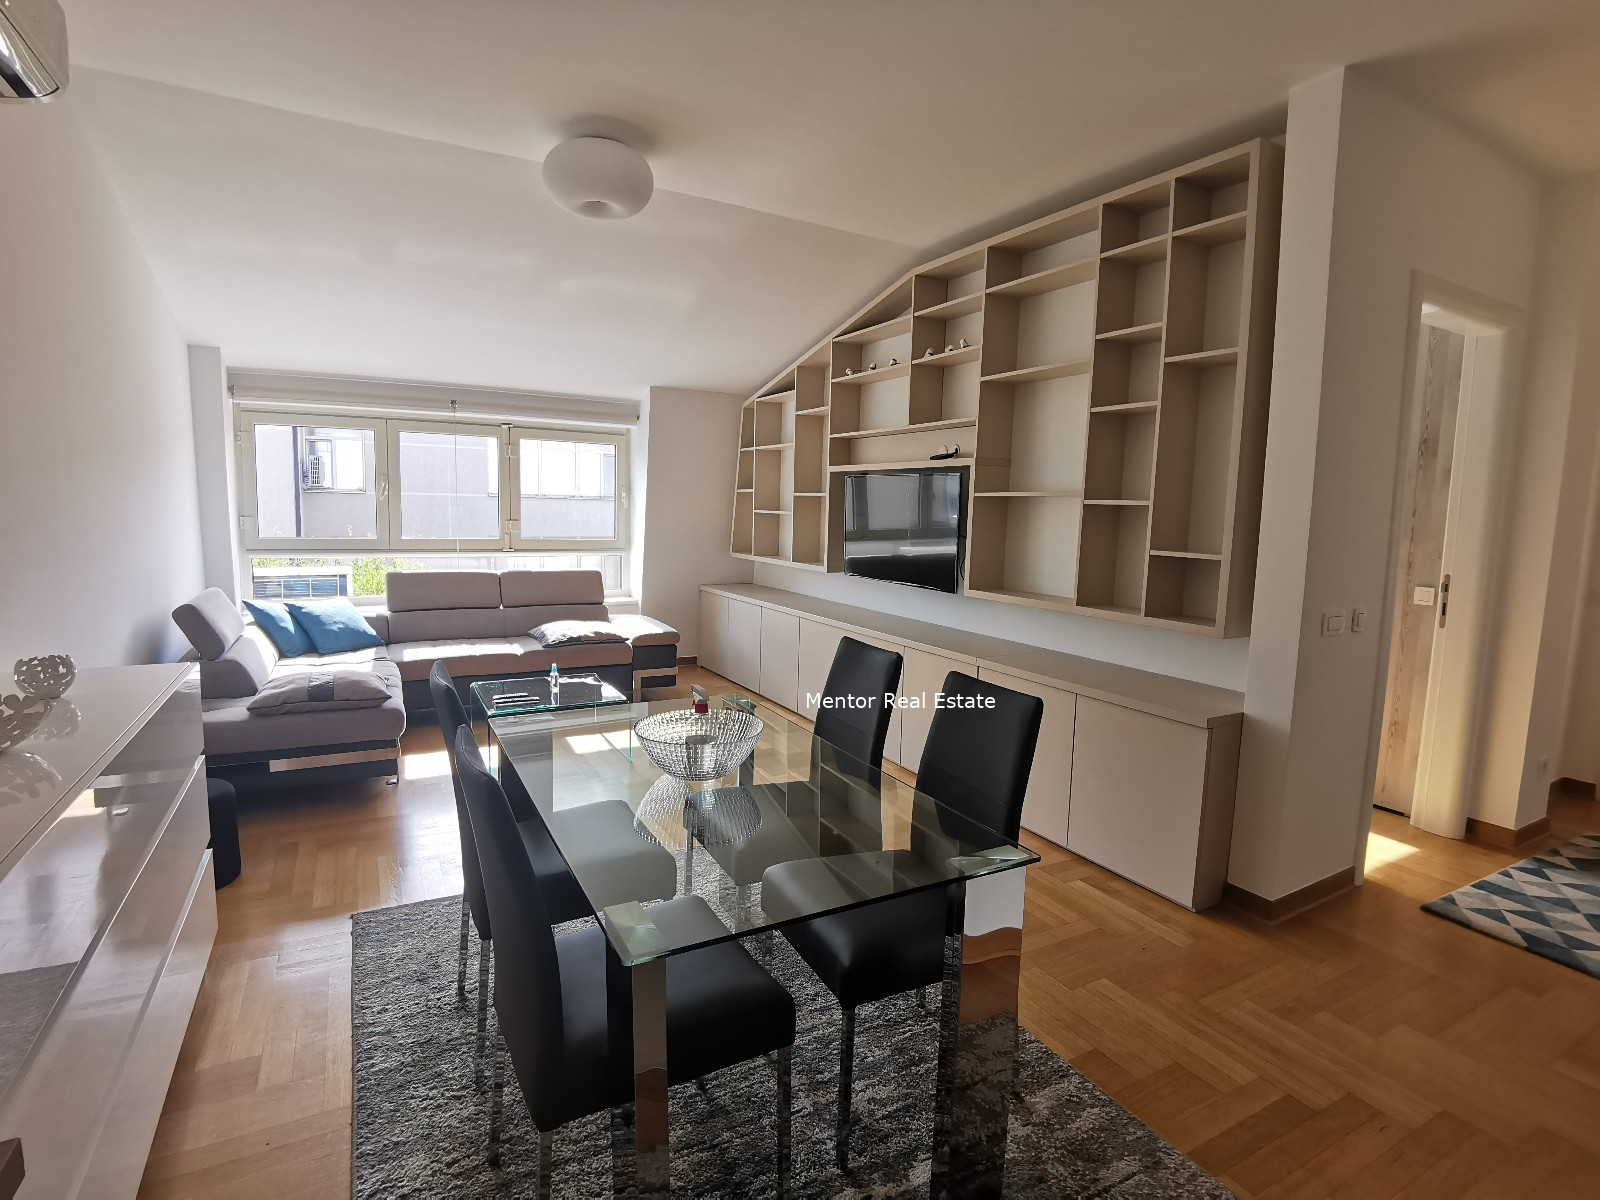 Vračar apartment for sale and rent